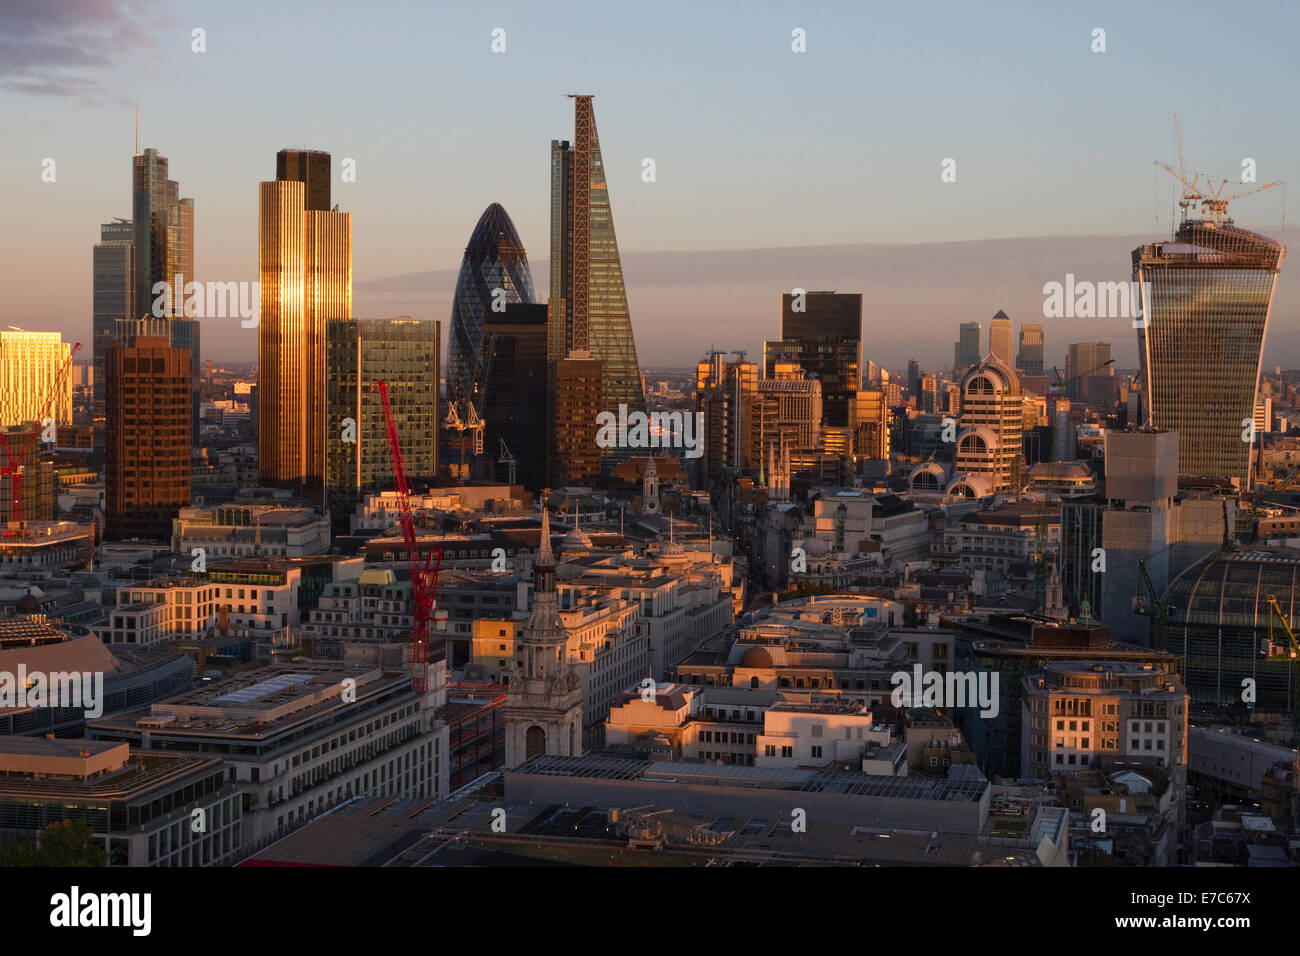 This image shows a view of the City of London from the Golden Gallery of St. Paul's Cathedral, London, England, - Stock Image